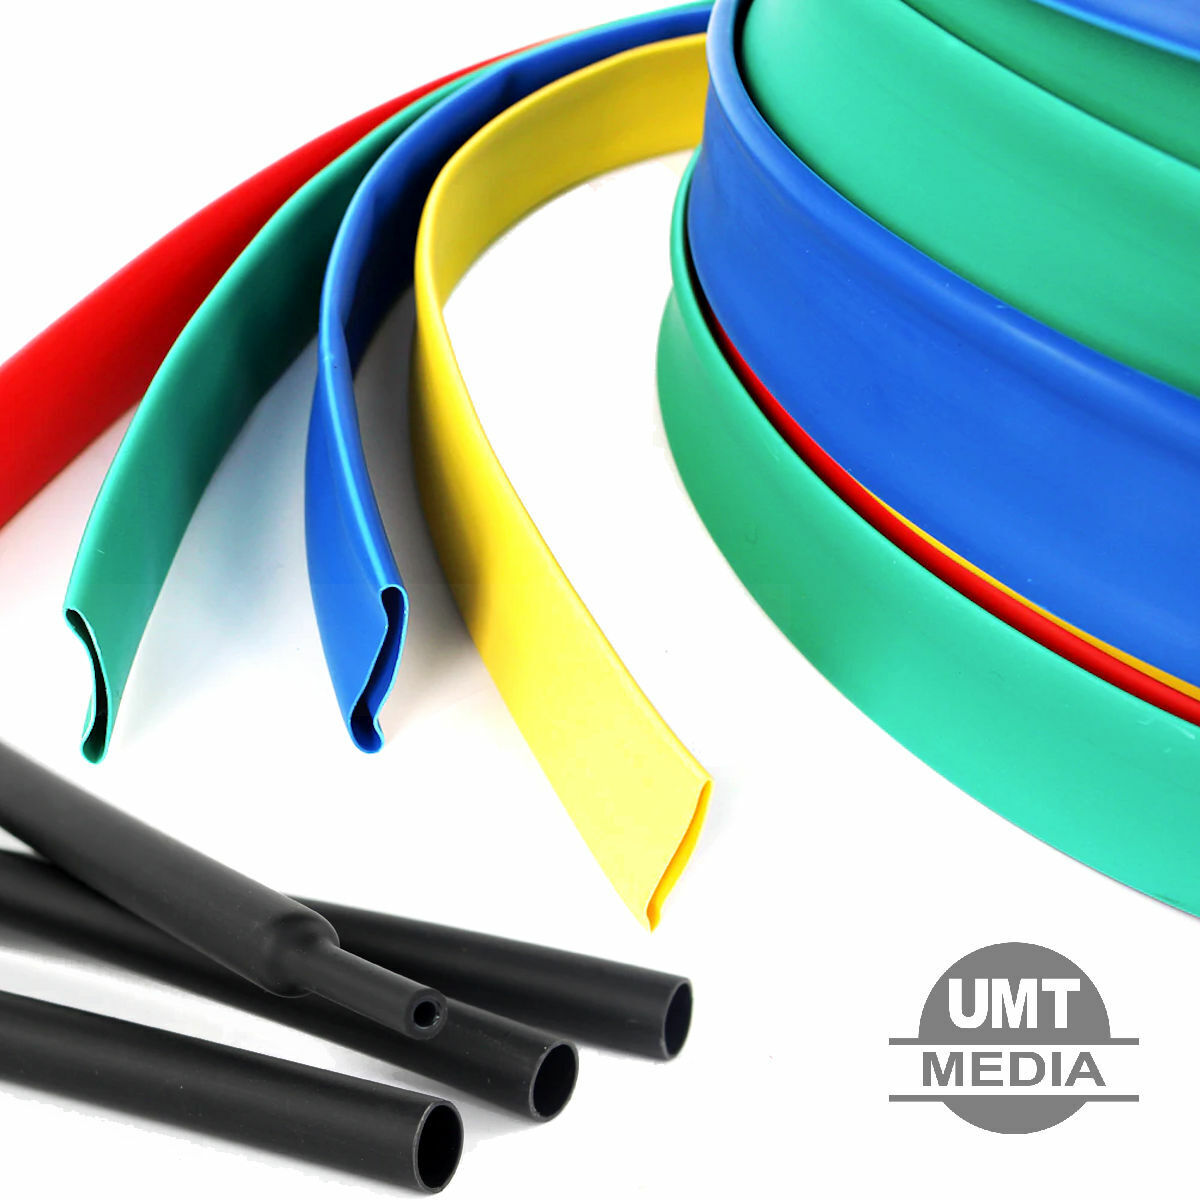 Φ6MM HEAT SHRINK TUBE SLEEVE 2:1 RATIO BLACK CLEAR BLUE RED YELLOW GREEN